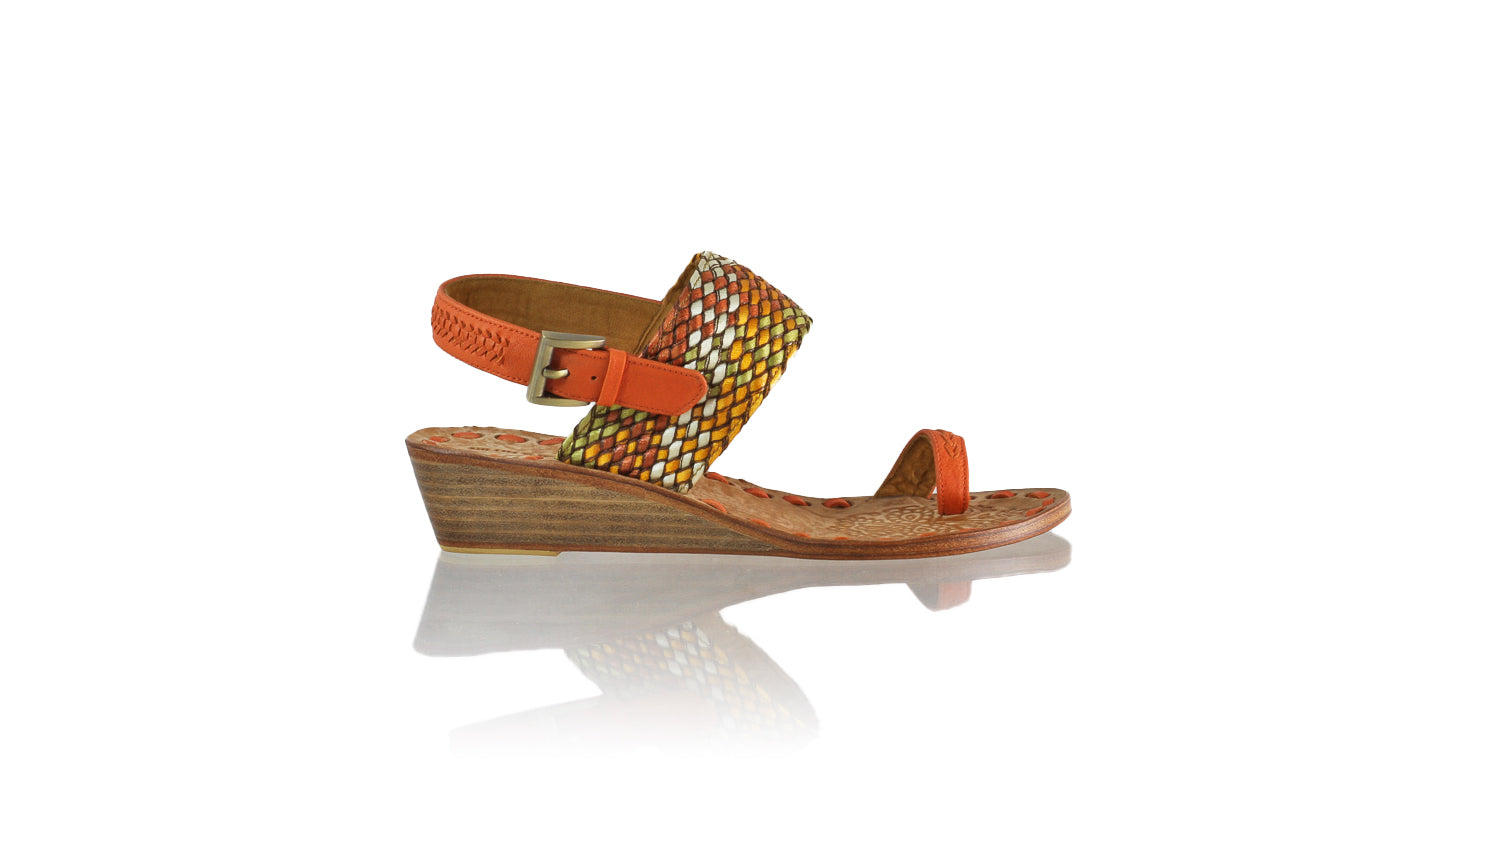 Leather-shoes-Prana 35mm Wedge - Orange & Multicolor Ribbon-sandals wedges-NILUH DJELANTIK-NILUH DJELANTIK